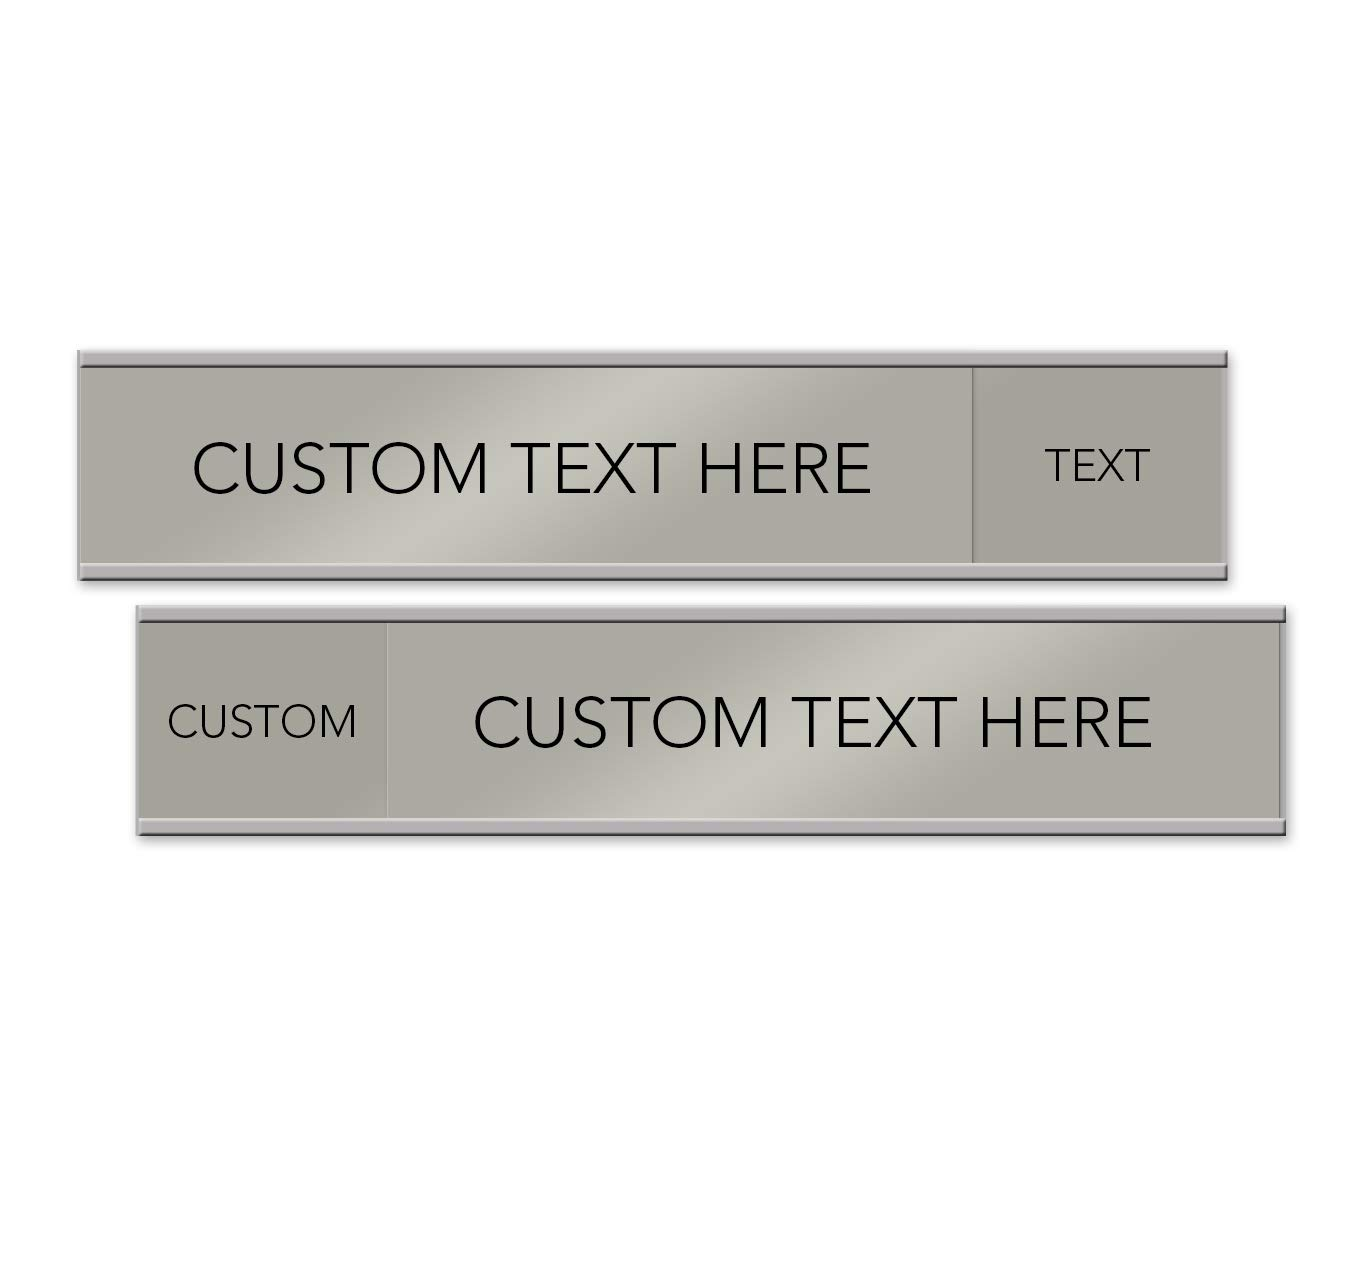 Customizable Quality Satin-Aluminum Slider Nameplates and Signs - 10 x 2 (Silver)